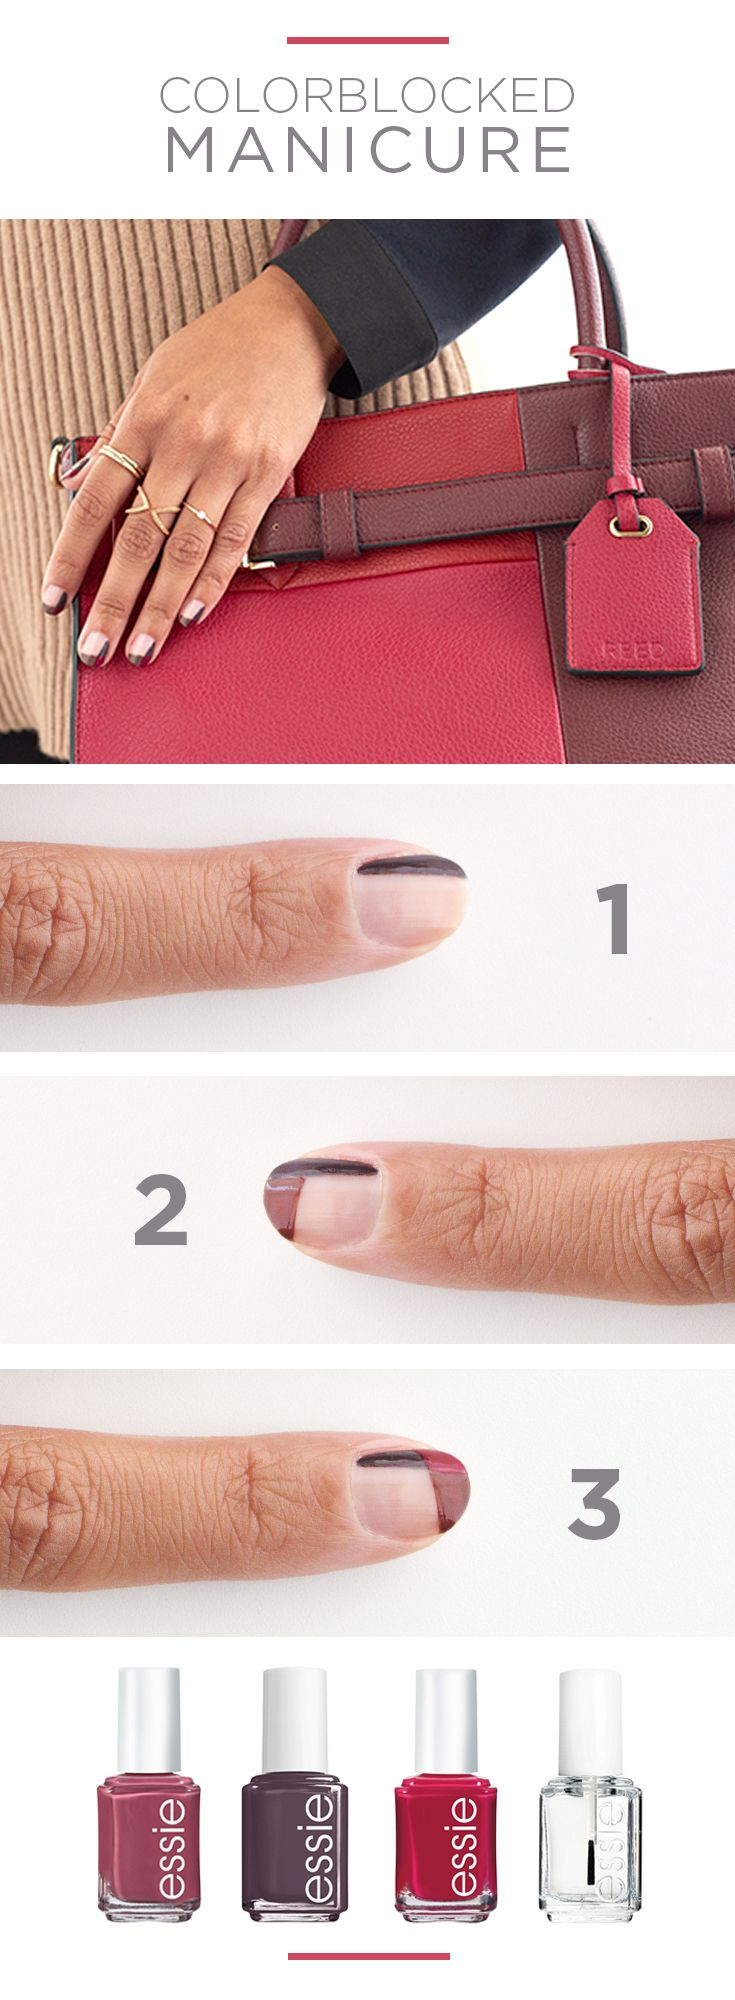 840 best Cute nails images on Pinterest | Nail scissors, Nail ...